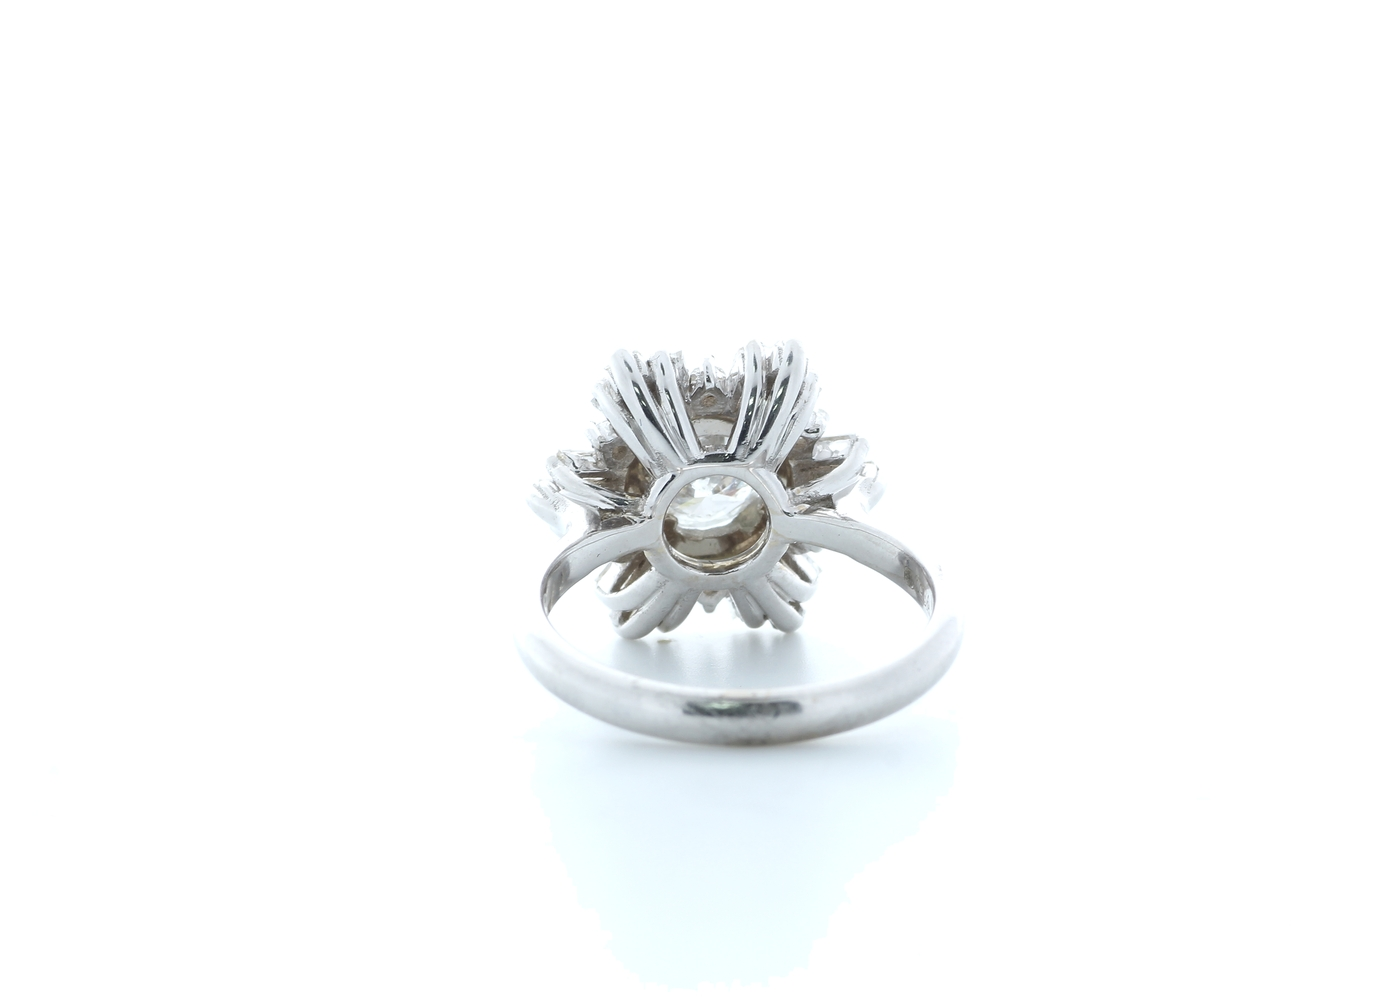 18ct White Gold Round Cluster Claw Set Diamond Ring 1.58 (0.77) Carats - Image 3 of 5